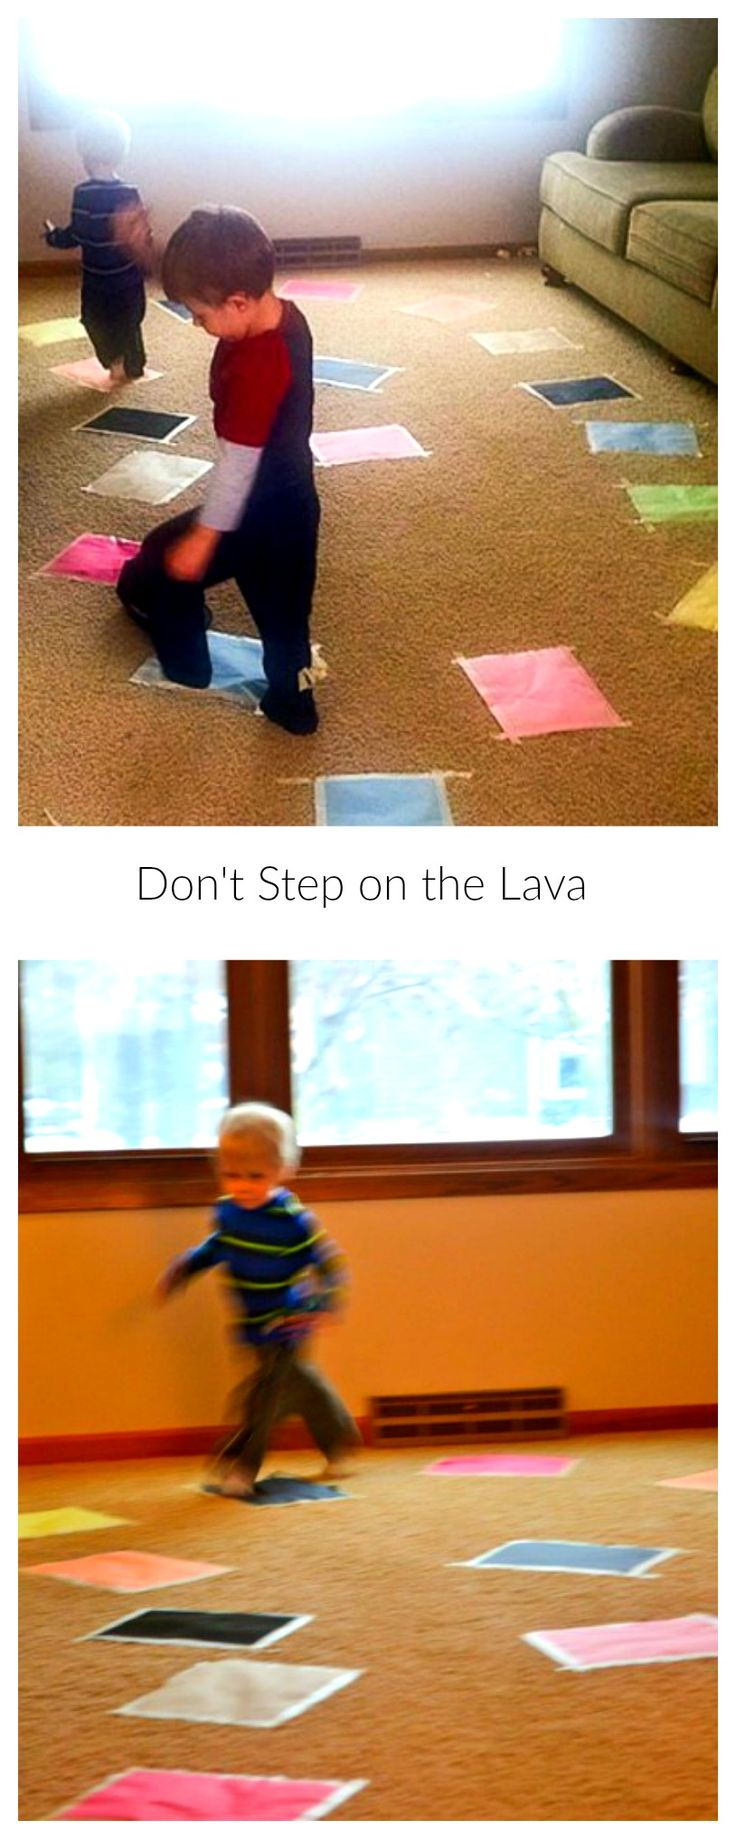 Watch out! The floor is lava, don't step on the lava!